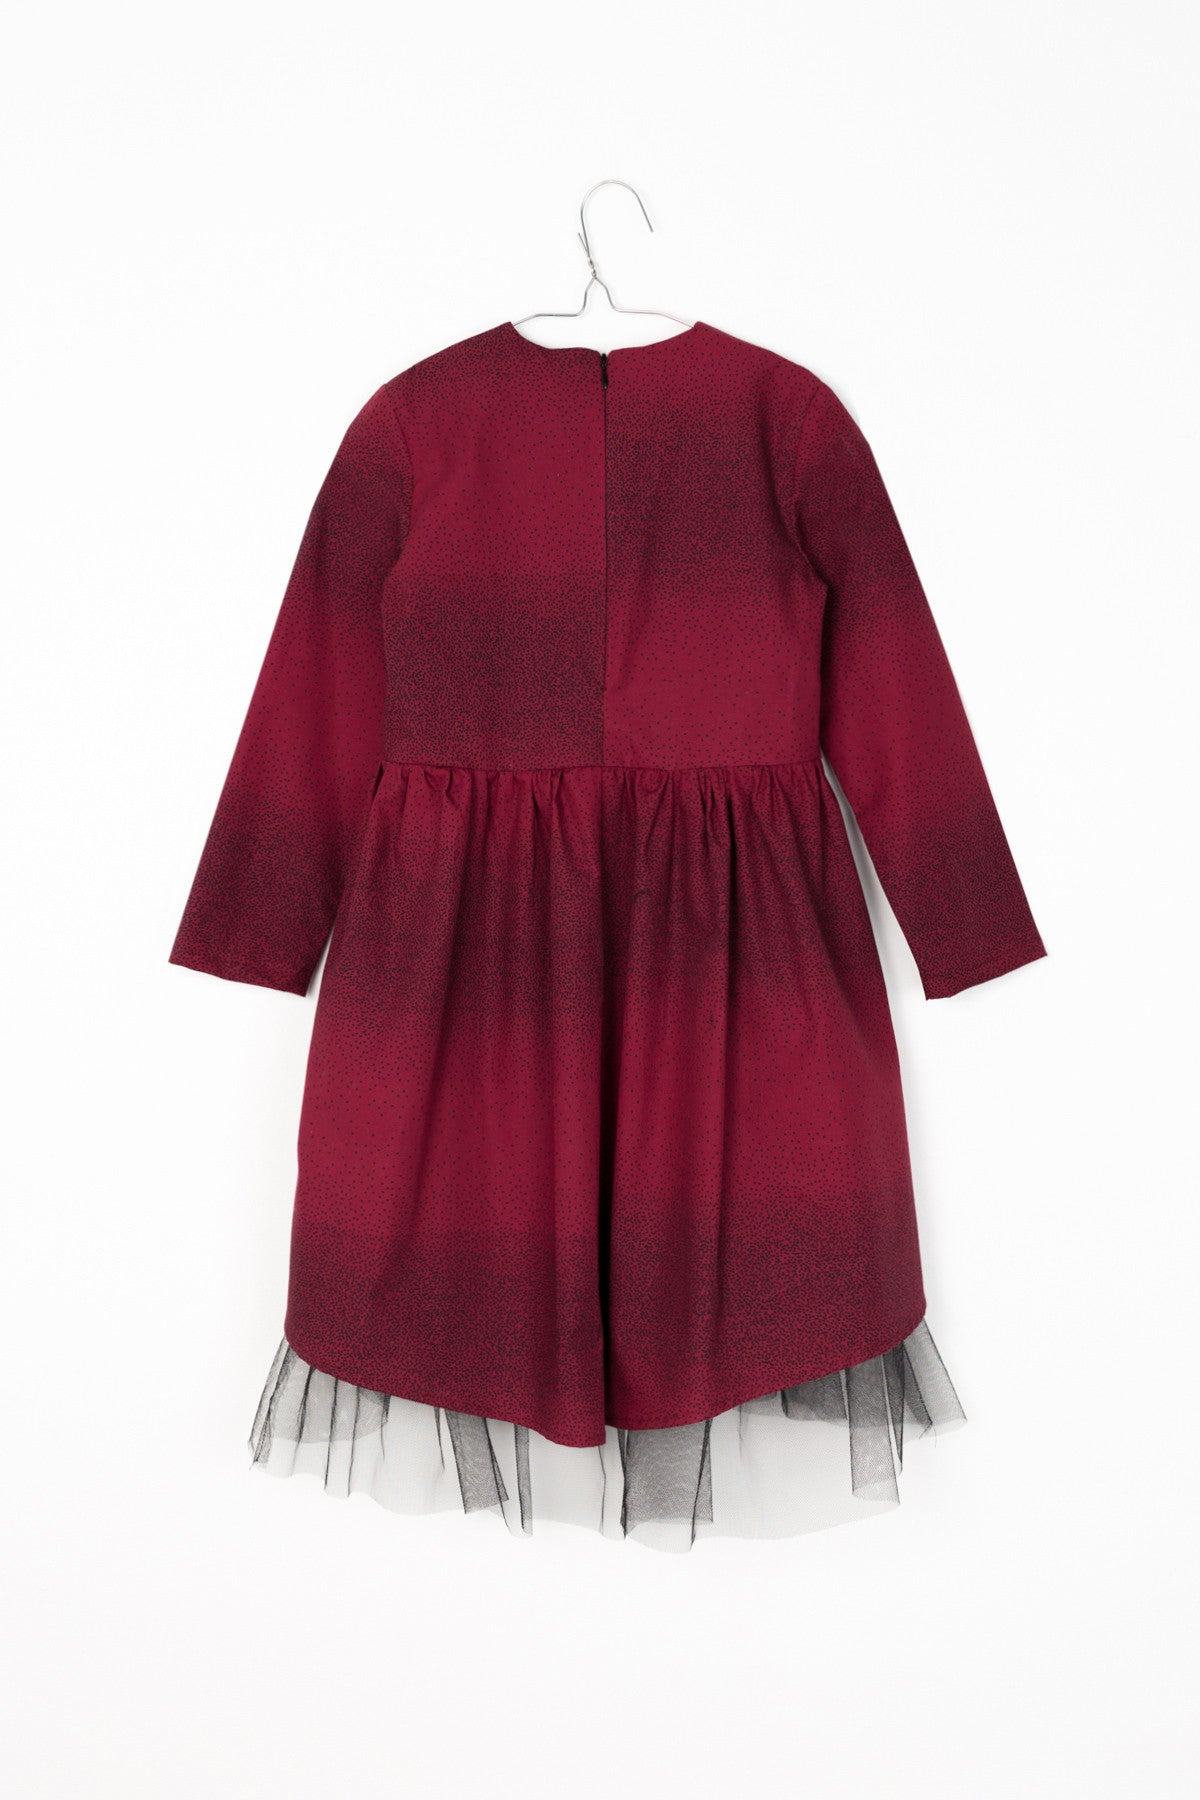 Motoreta Burgundy Dot Thea Dress - Ladida